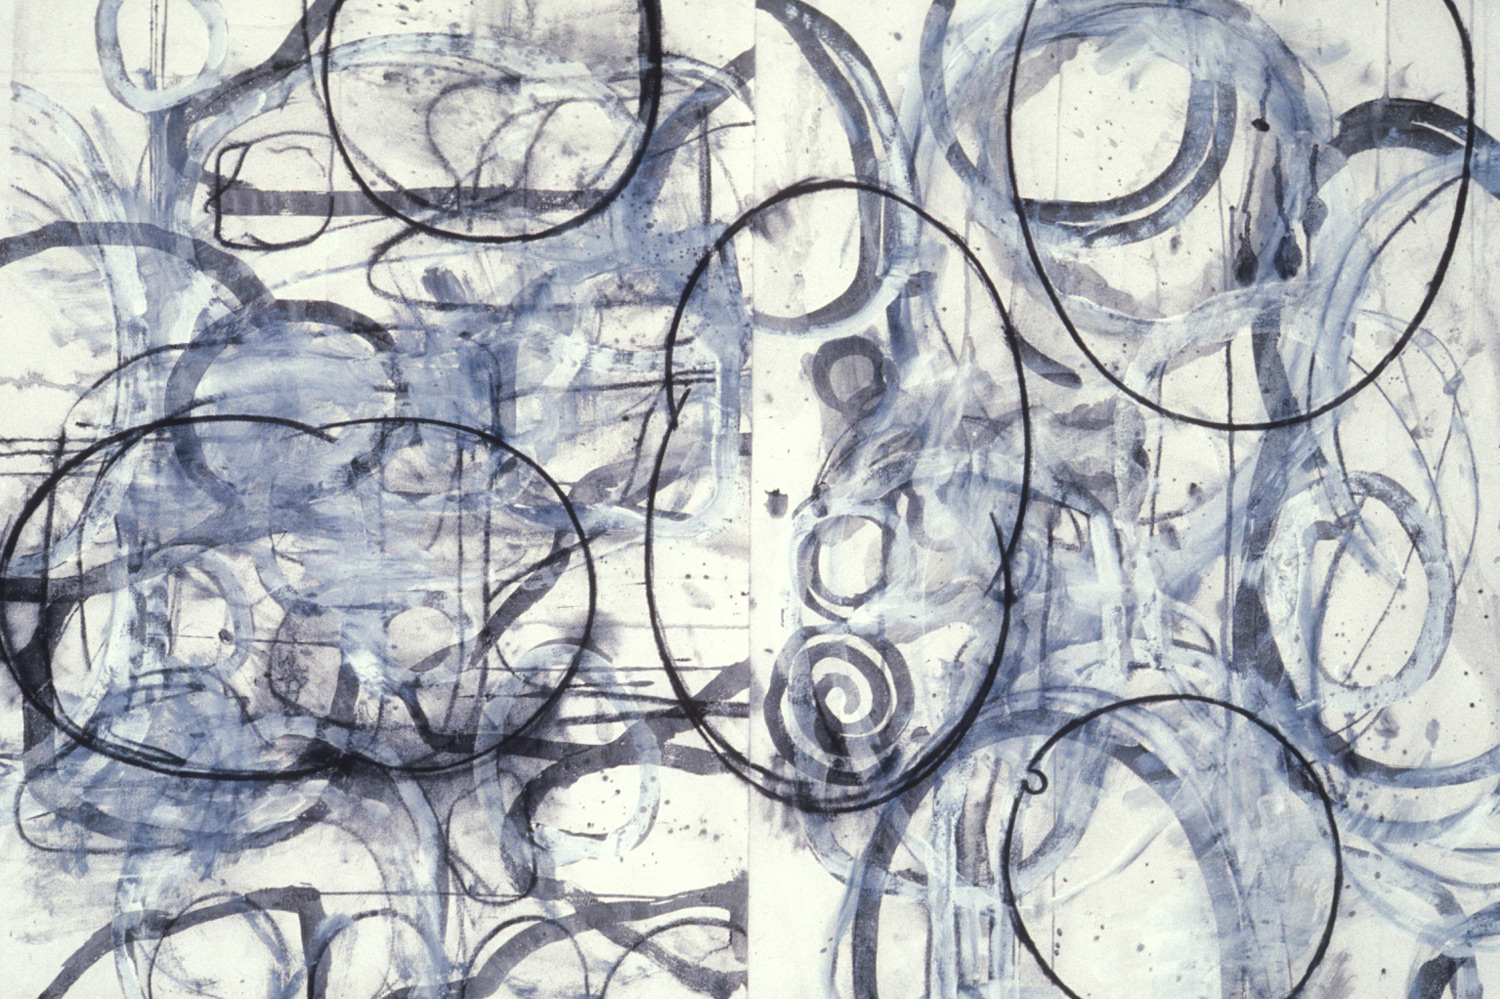 Untitled #6  , 1989, charcoal and gesso on paper, 30 x 44 in.